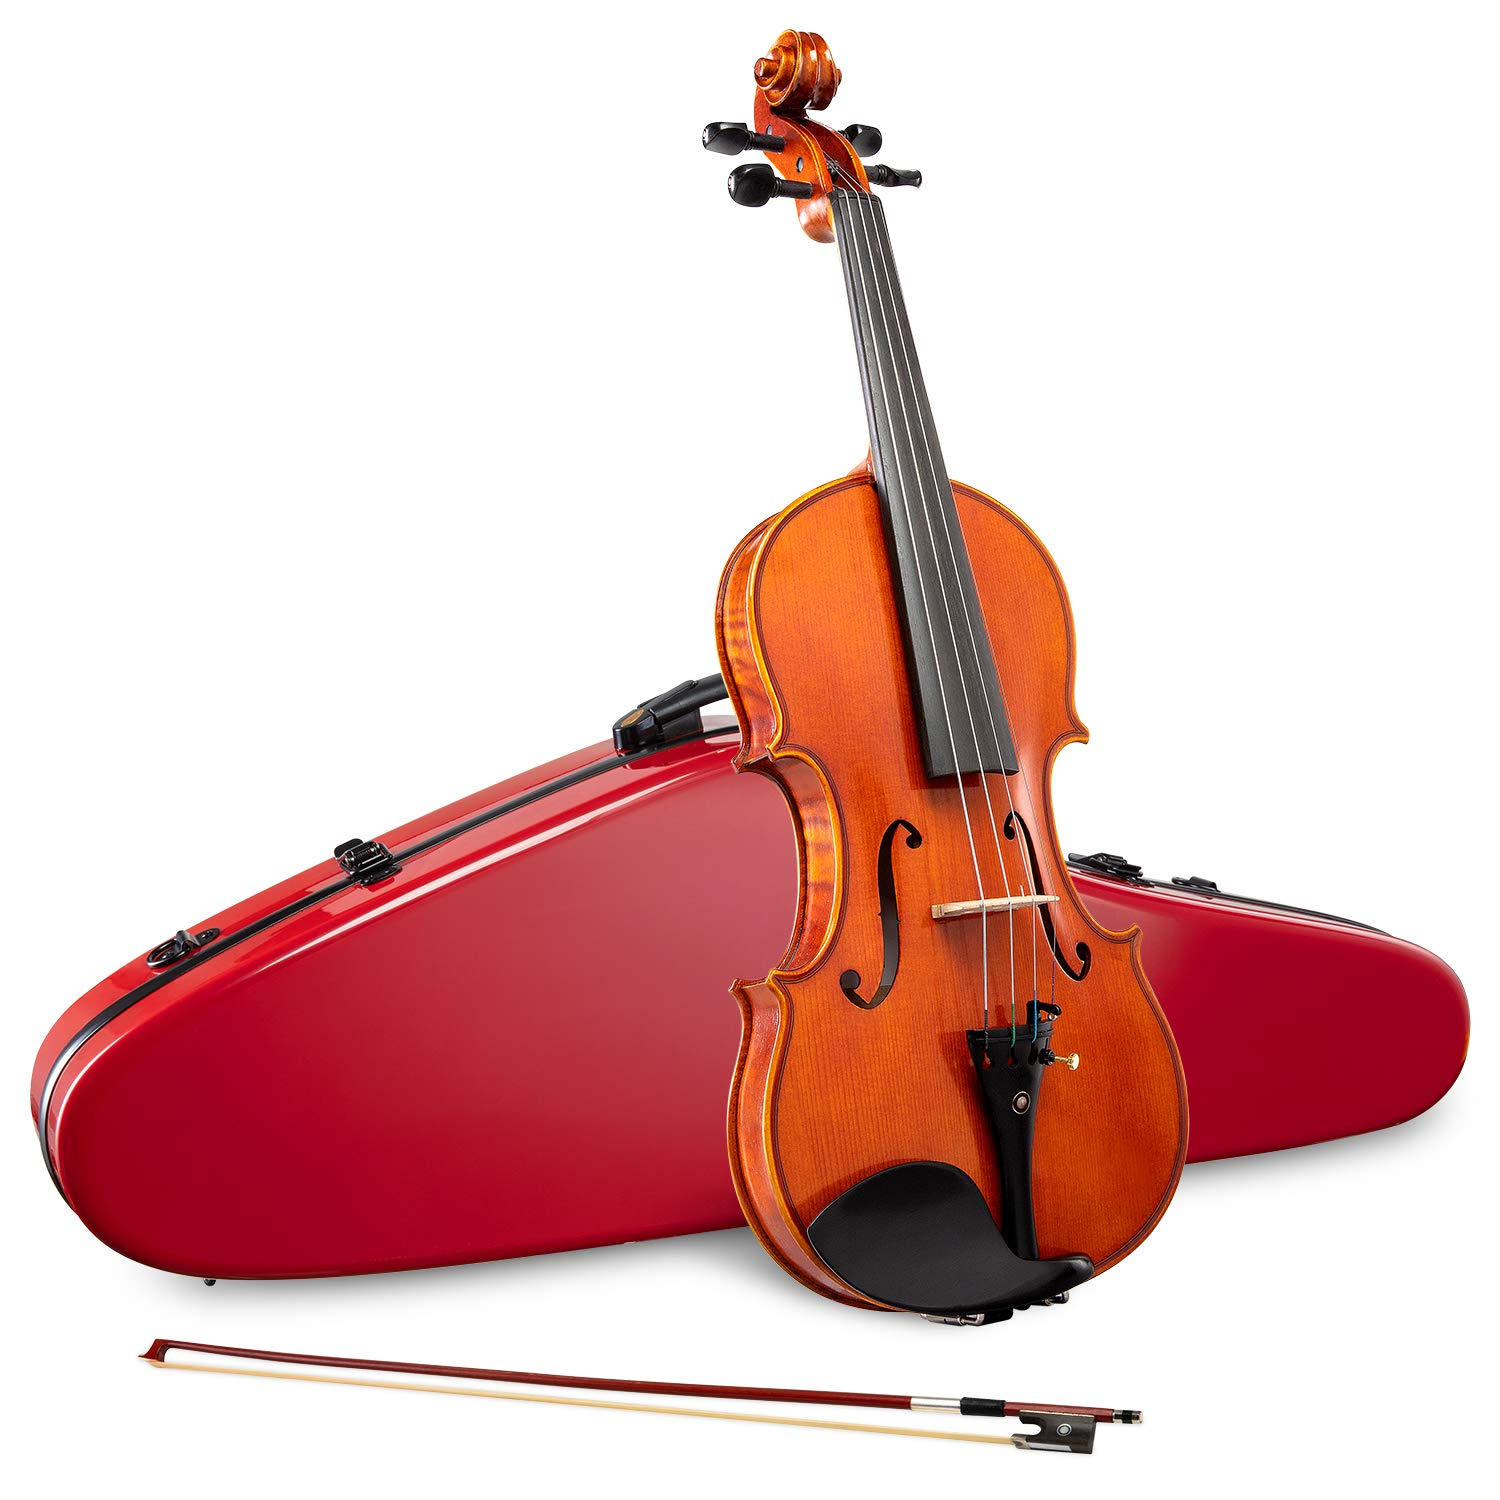 LyxJam Premium Full Size Violin Set - 4/4 Maple/Spruce Violin Kit for Beginner & Intermediate Players, Rosin, Red Hard Carry Case w/Hygrometer & Strap